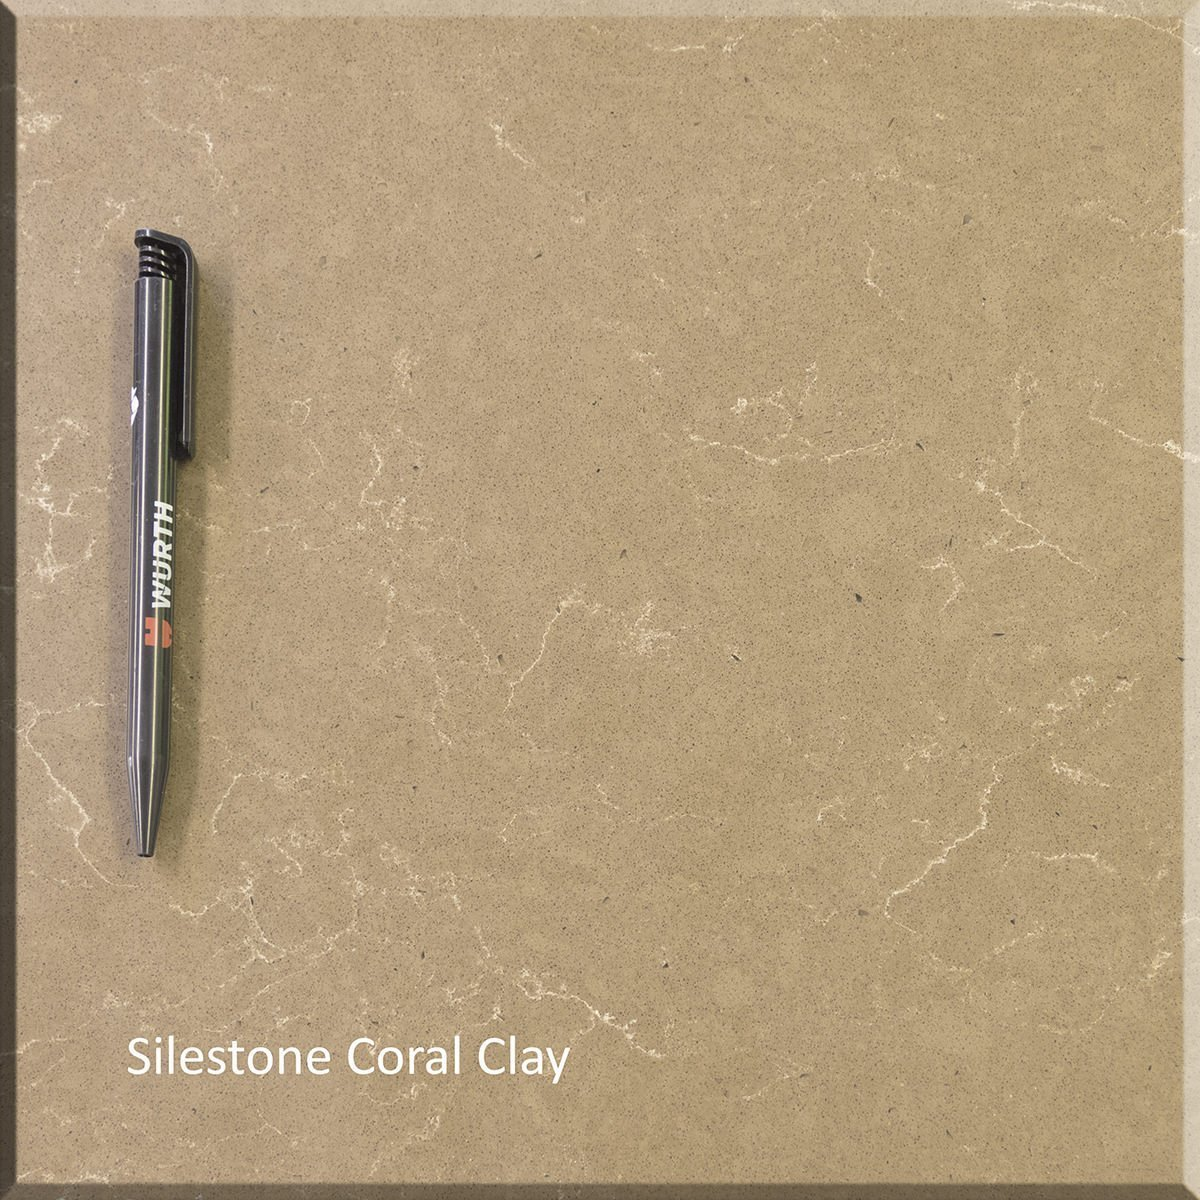 Introducing Silestone Coral Clay And Sensa Colonial White